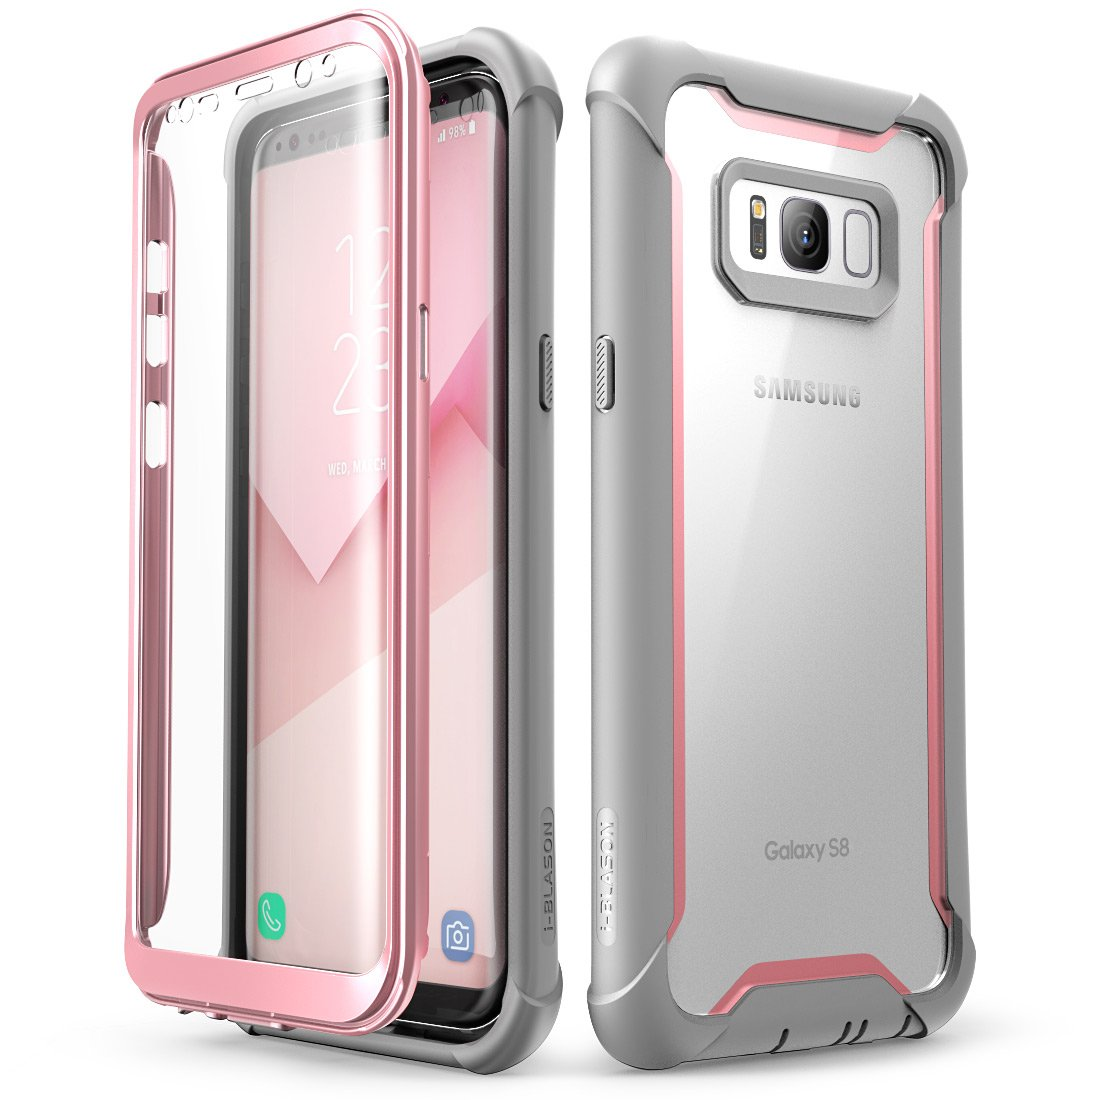 Samsung Galaxy S8 case, i-Blason [Ares] Full-Body Rugged Clear Bumper Case with Built-in Screen Protector for Samsung Galaxy S8 2017 Release (Pink)